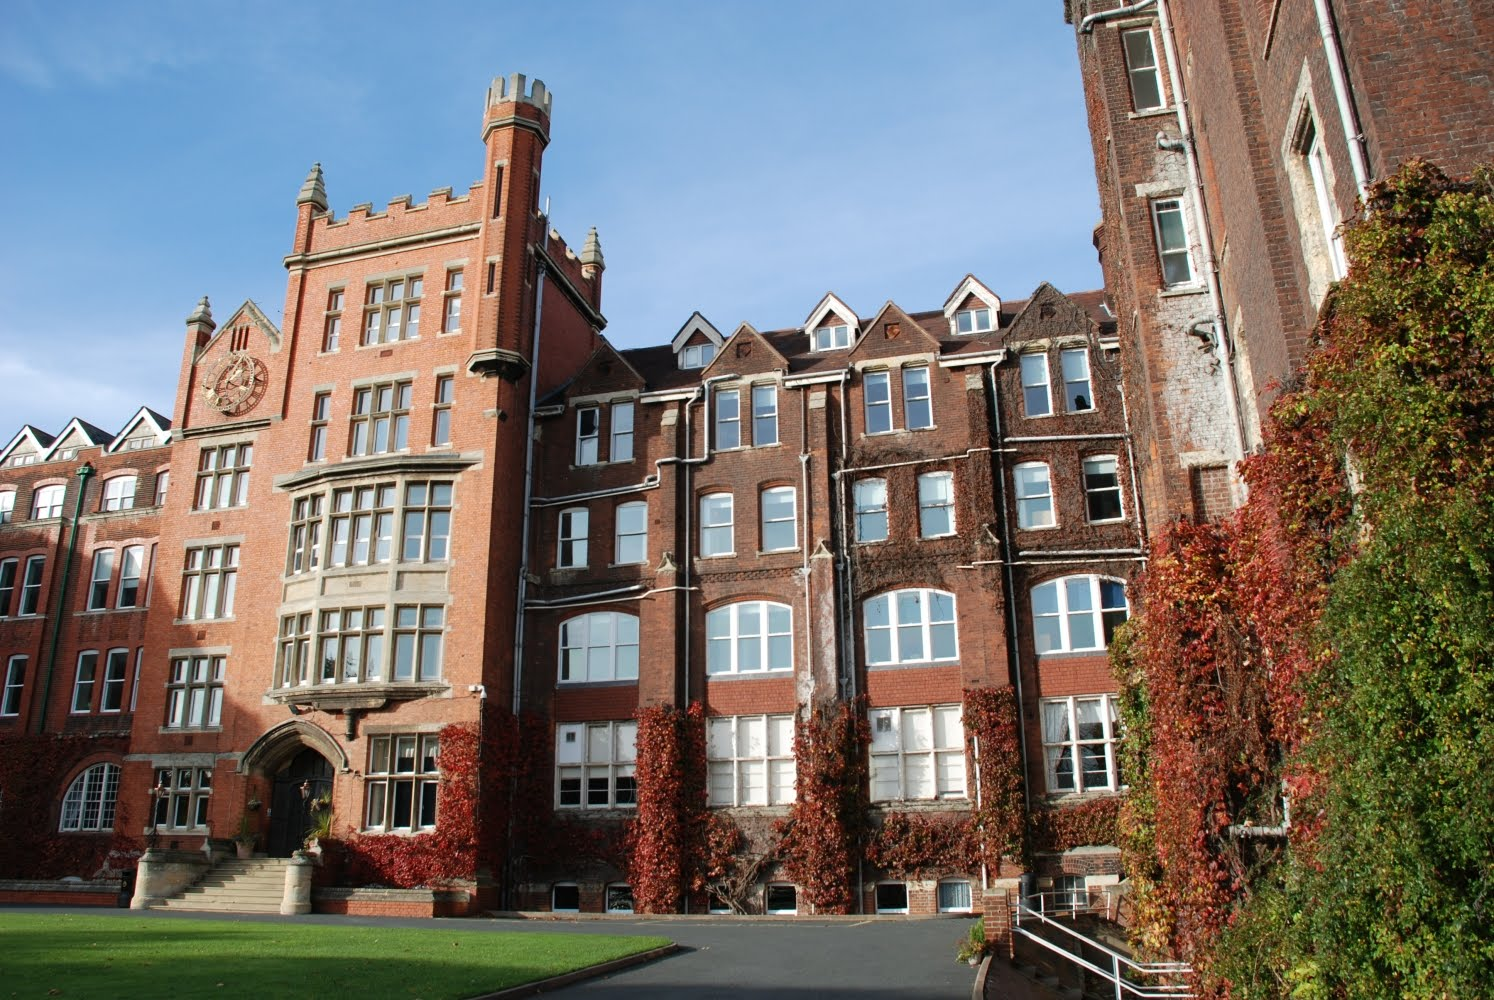 St Lawrence College School